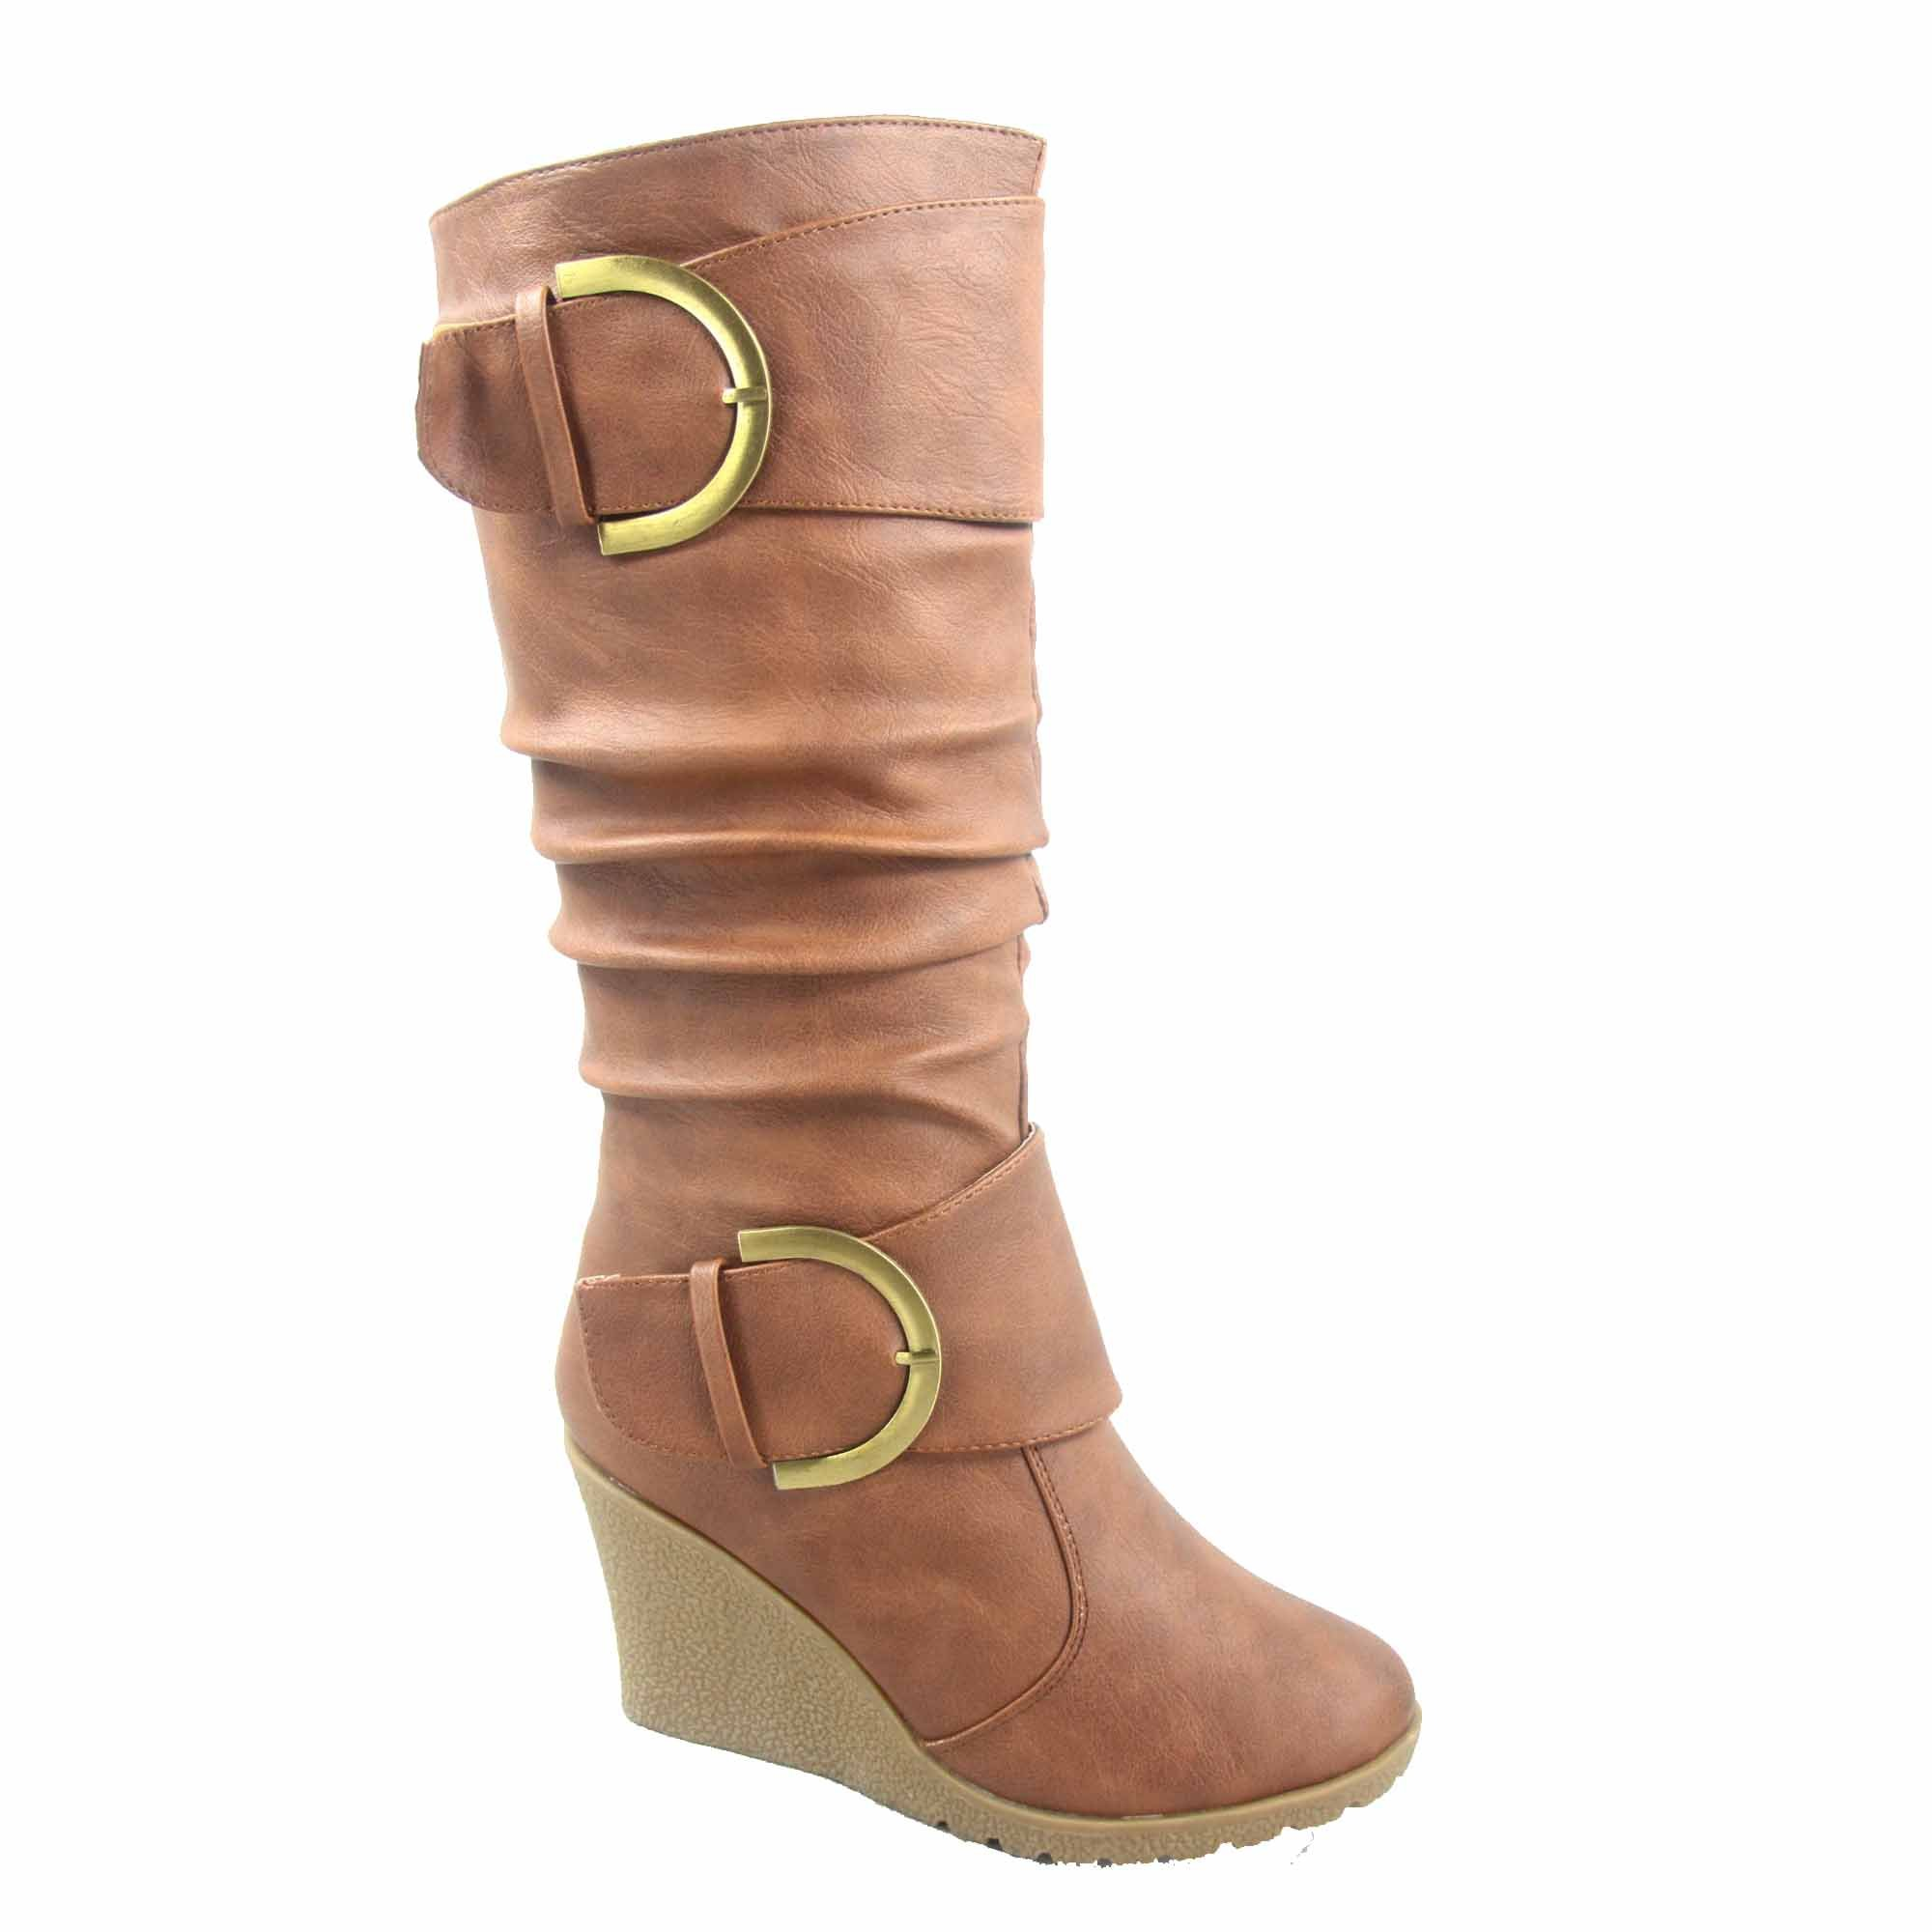 Top Moda Pure-65 Women's Fashion Round Toe Slouch Buckle Wedge Mid Calf Boot Shoes (7.5, Tan)